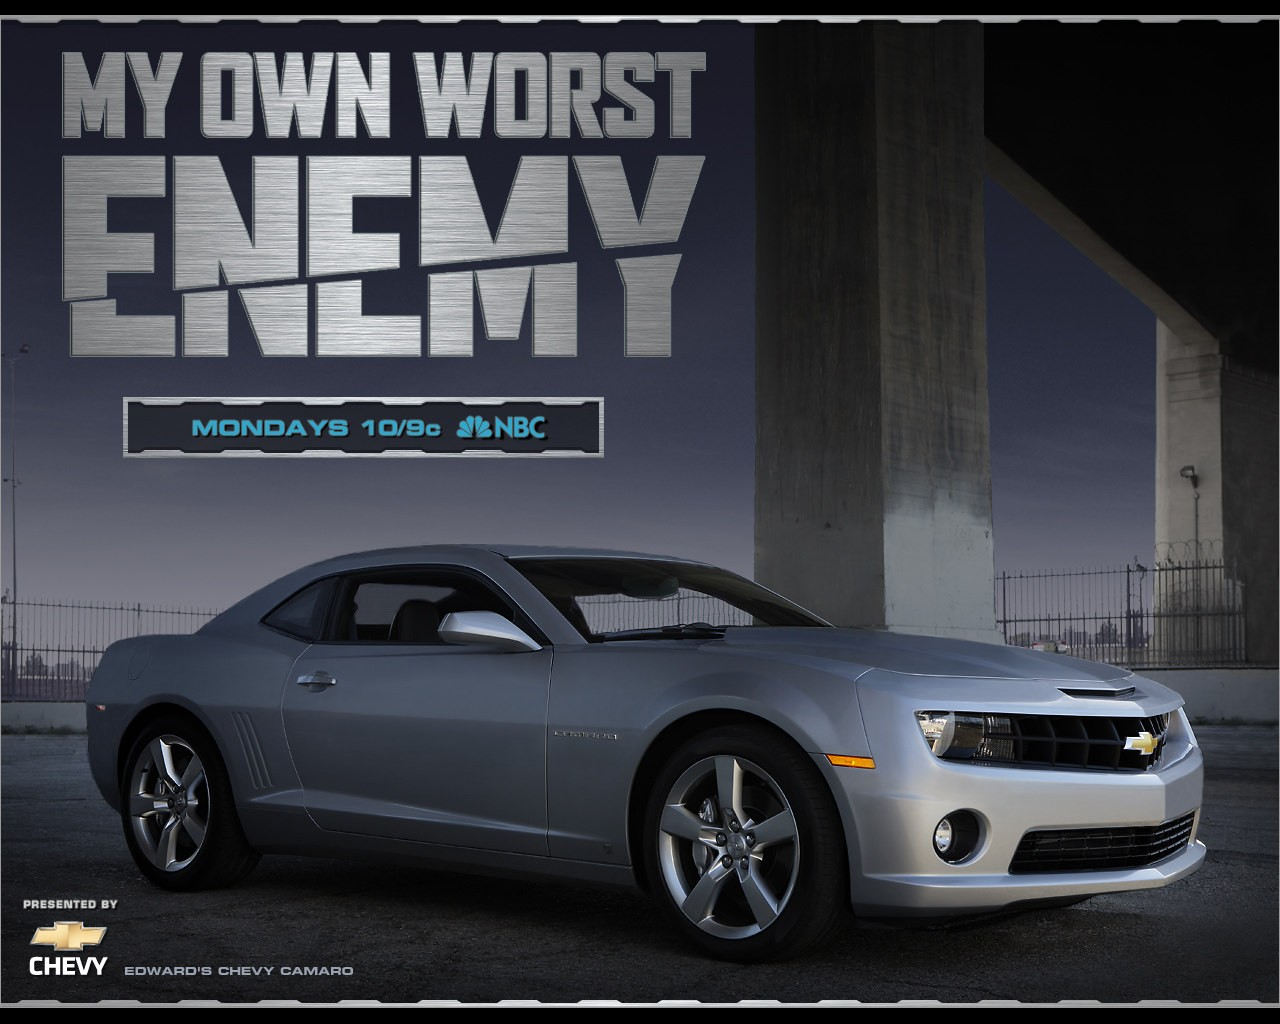 Wallpaper della serie My Own Worst Enemy, con la Chevy camaro di Edward